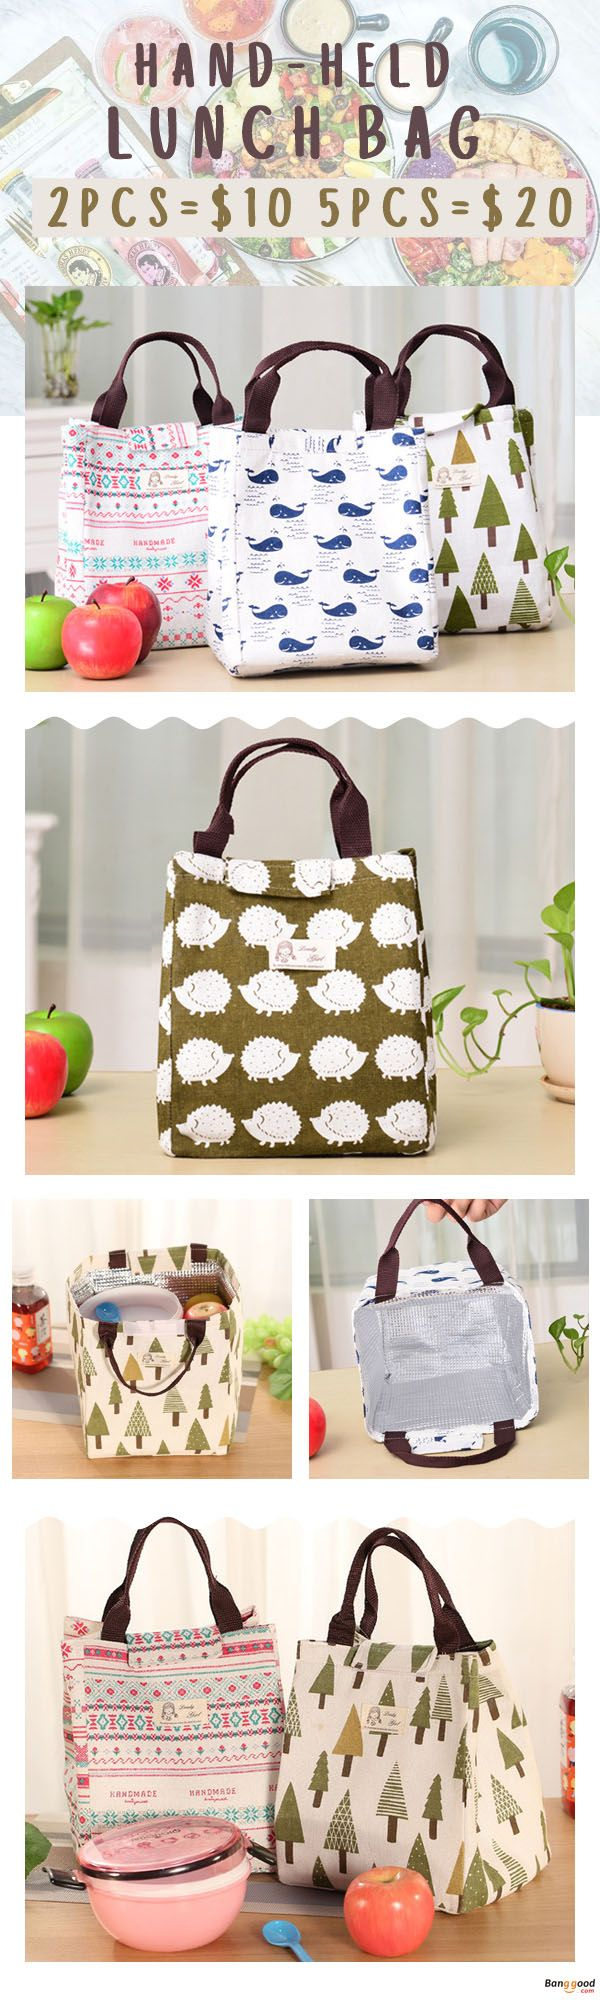 US$5.98 + Free Shipping. 2Pcs=$10 & 5Pcs=$20. Hand-held lunch bag. Bring your own meal to office or school, health and safety. Shop at banggood.